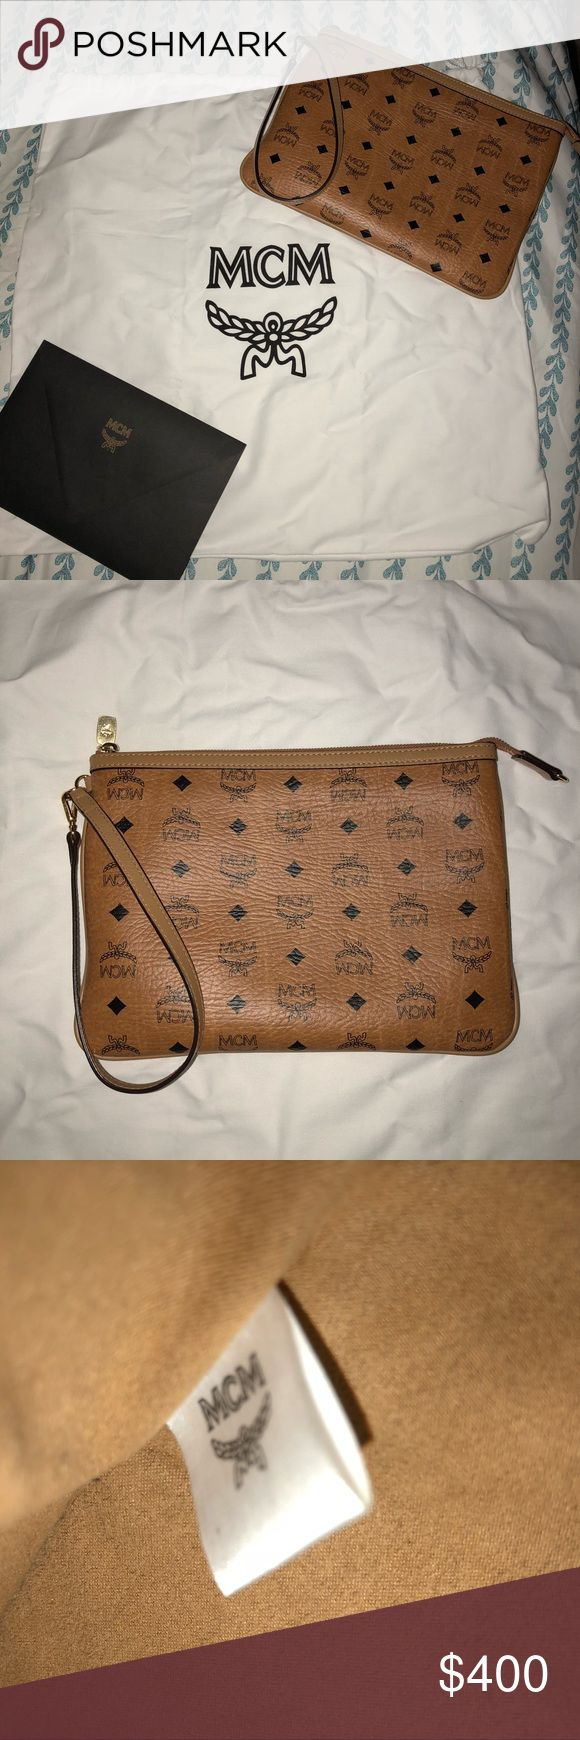 MCM Visetos Clutch MCM Clutch, in cognac. Has some wear around the edges but condition is 9/10. does not come with receipt or dustbag. Price firm due to Poshmark charges. MCM Bags Clutches & Wristlets